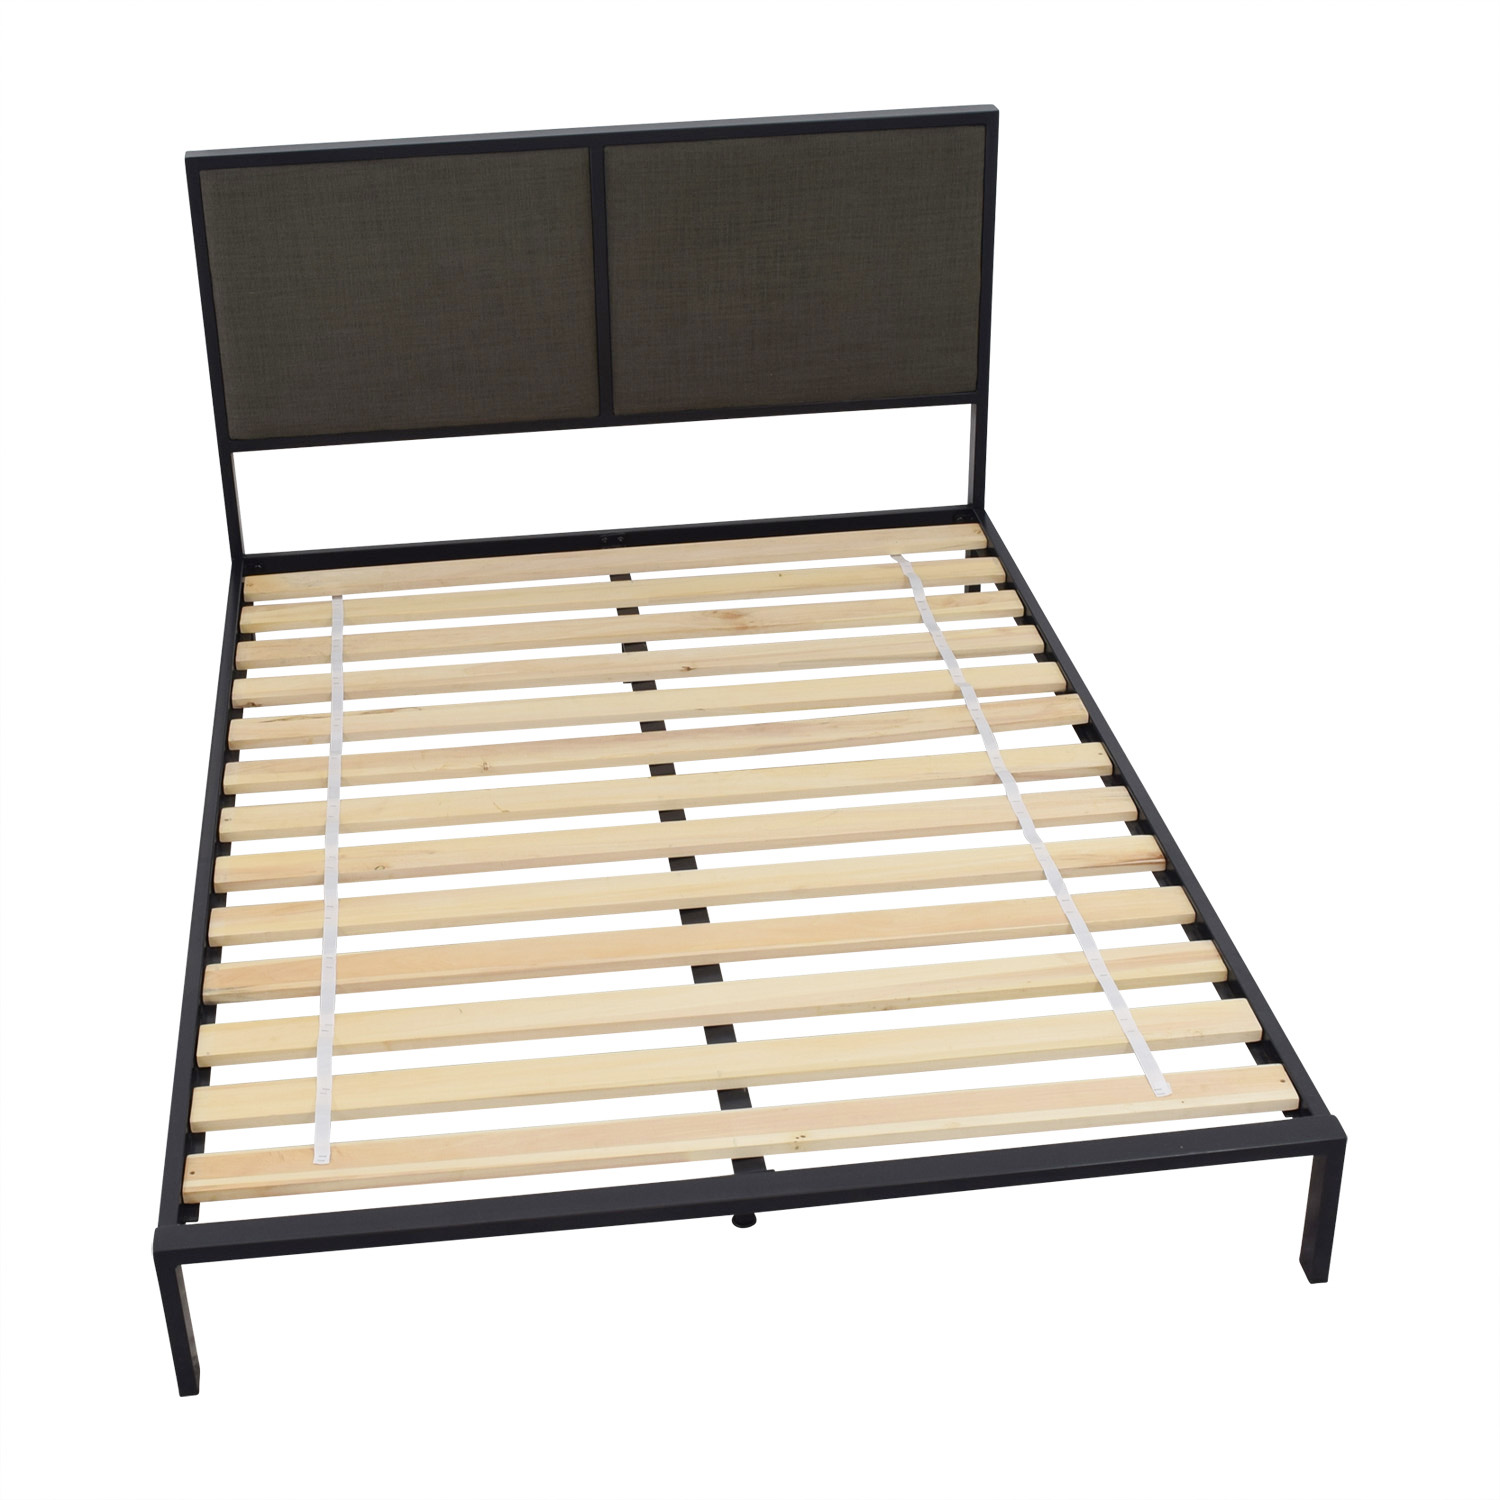 shop Crate & Barrel Crate & Barrel Oliver Full Platform Bed Frame online